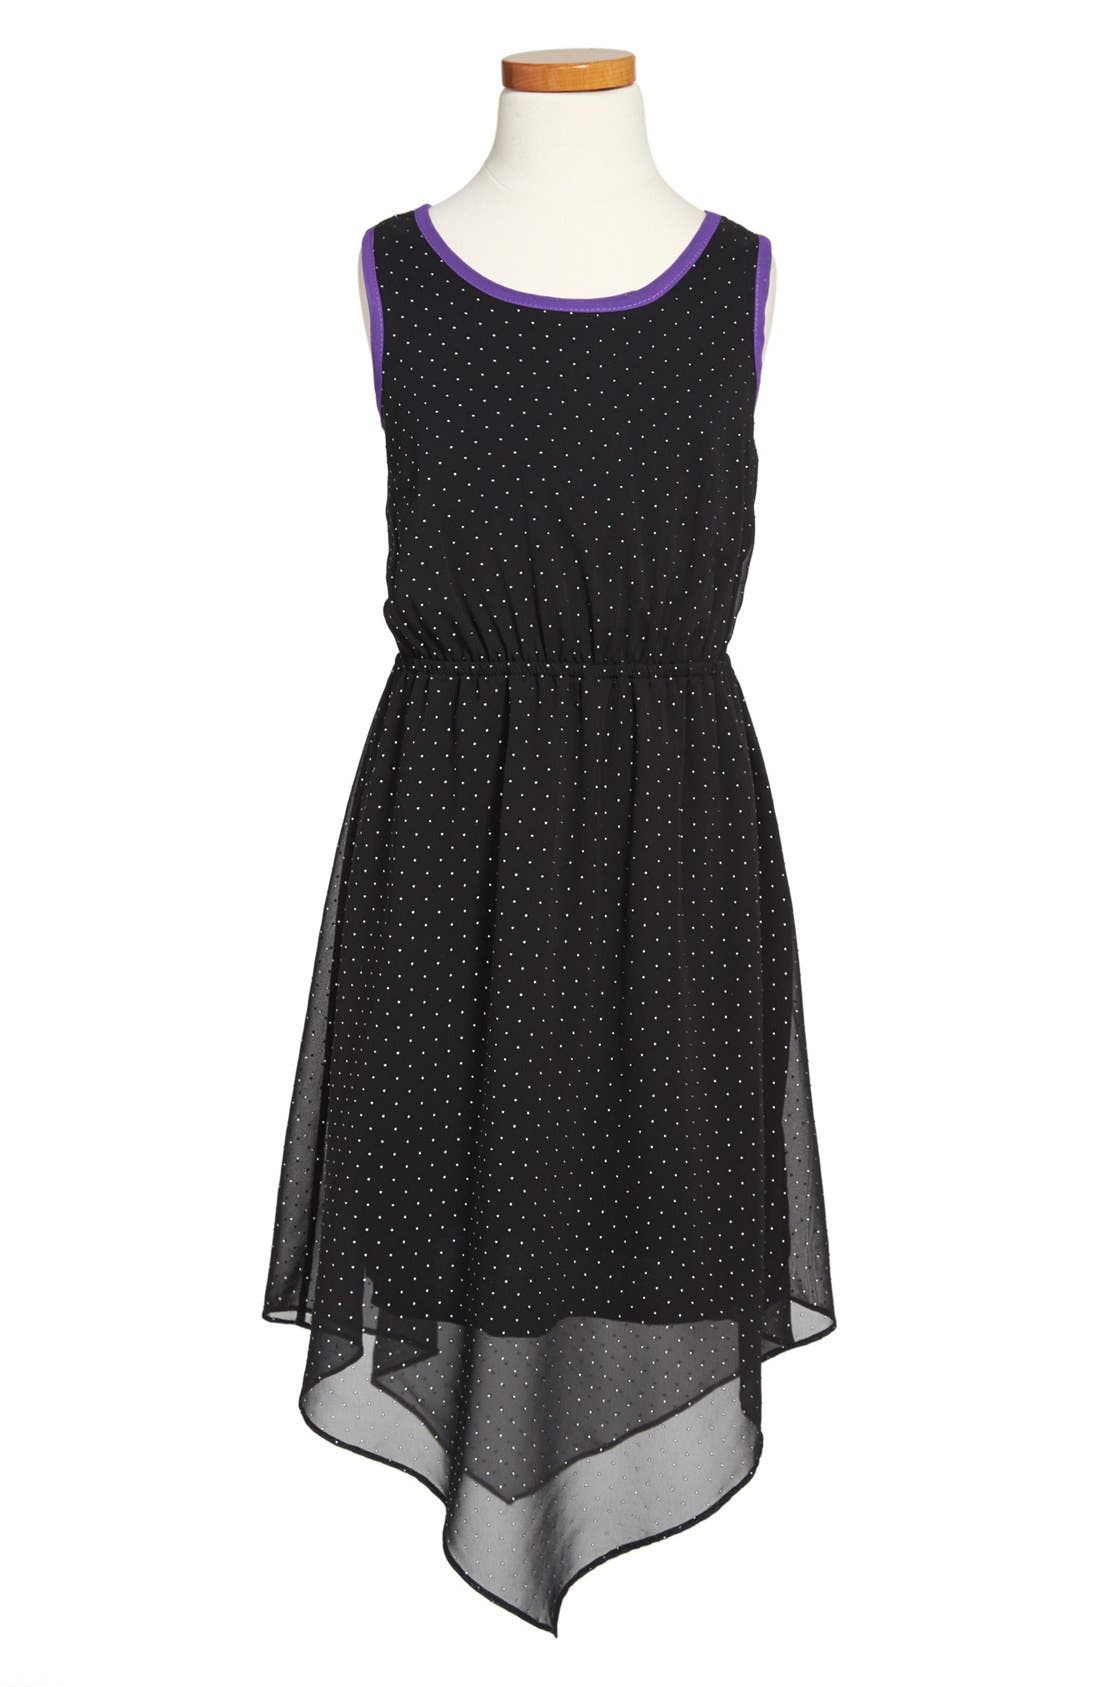 Alternate Image 1 Selected - Soprano Studded Dipped Hem Sleeveless Dress (Big Girls)